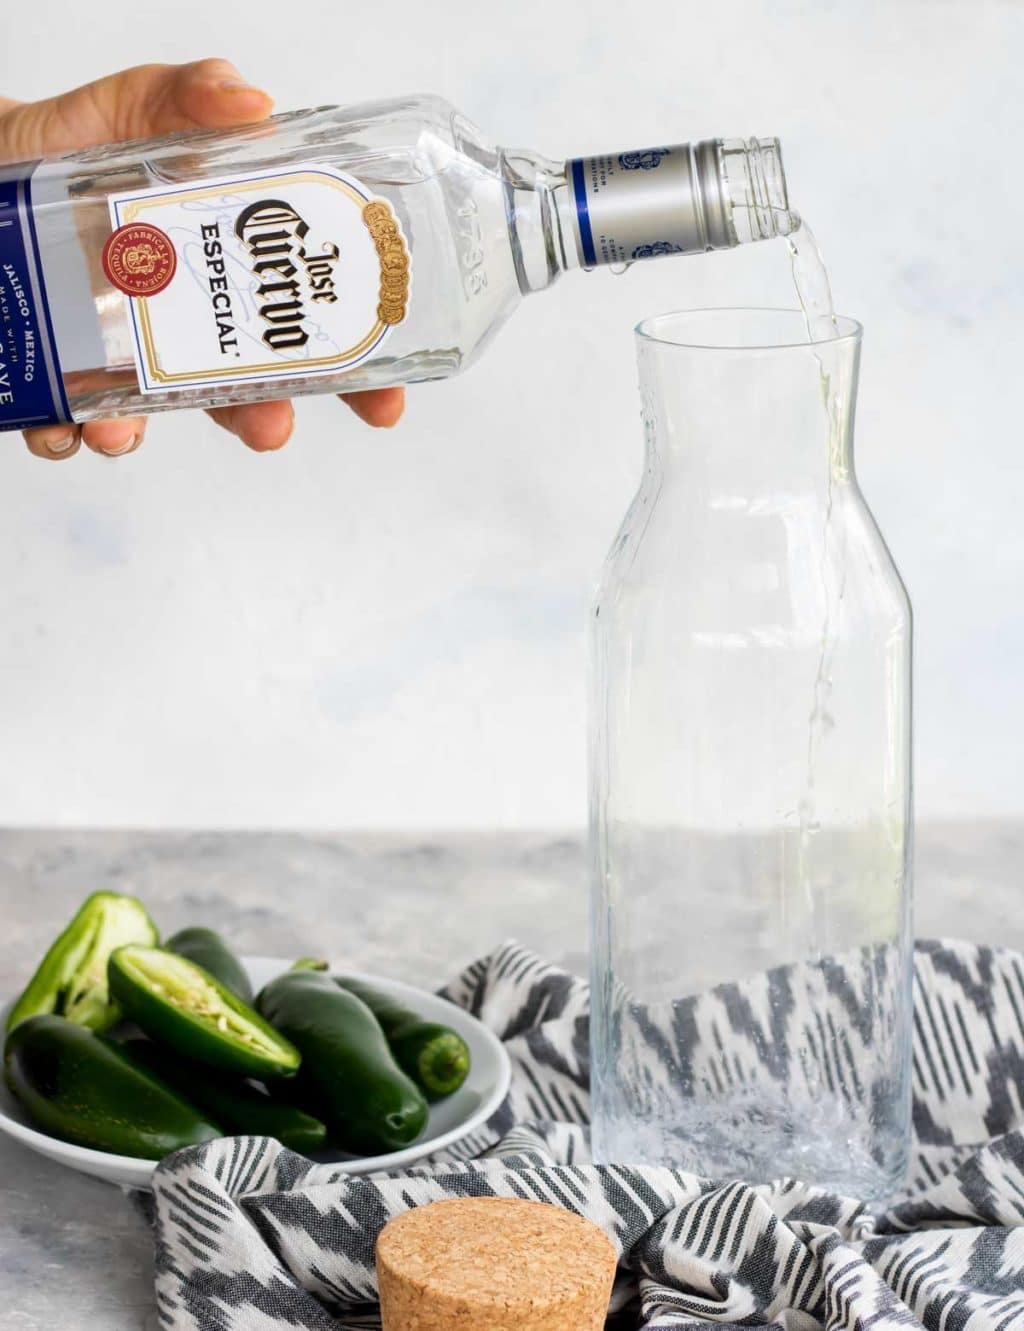 Pouring a bottle of silver tequila into a glass container with a bowl of jalapenos to the side